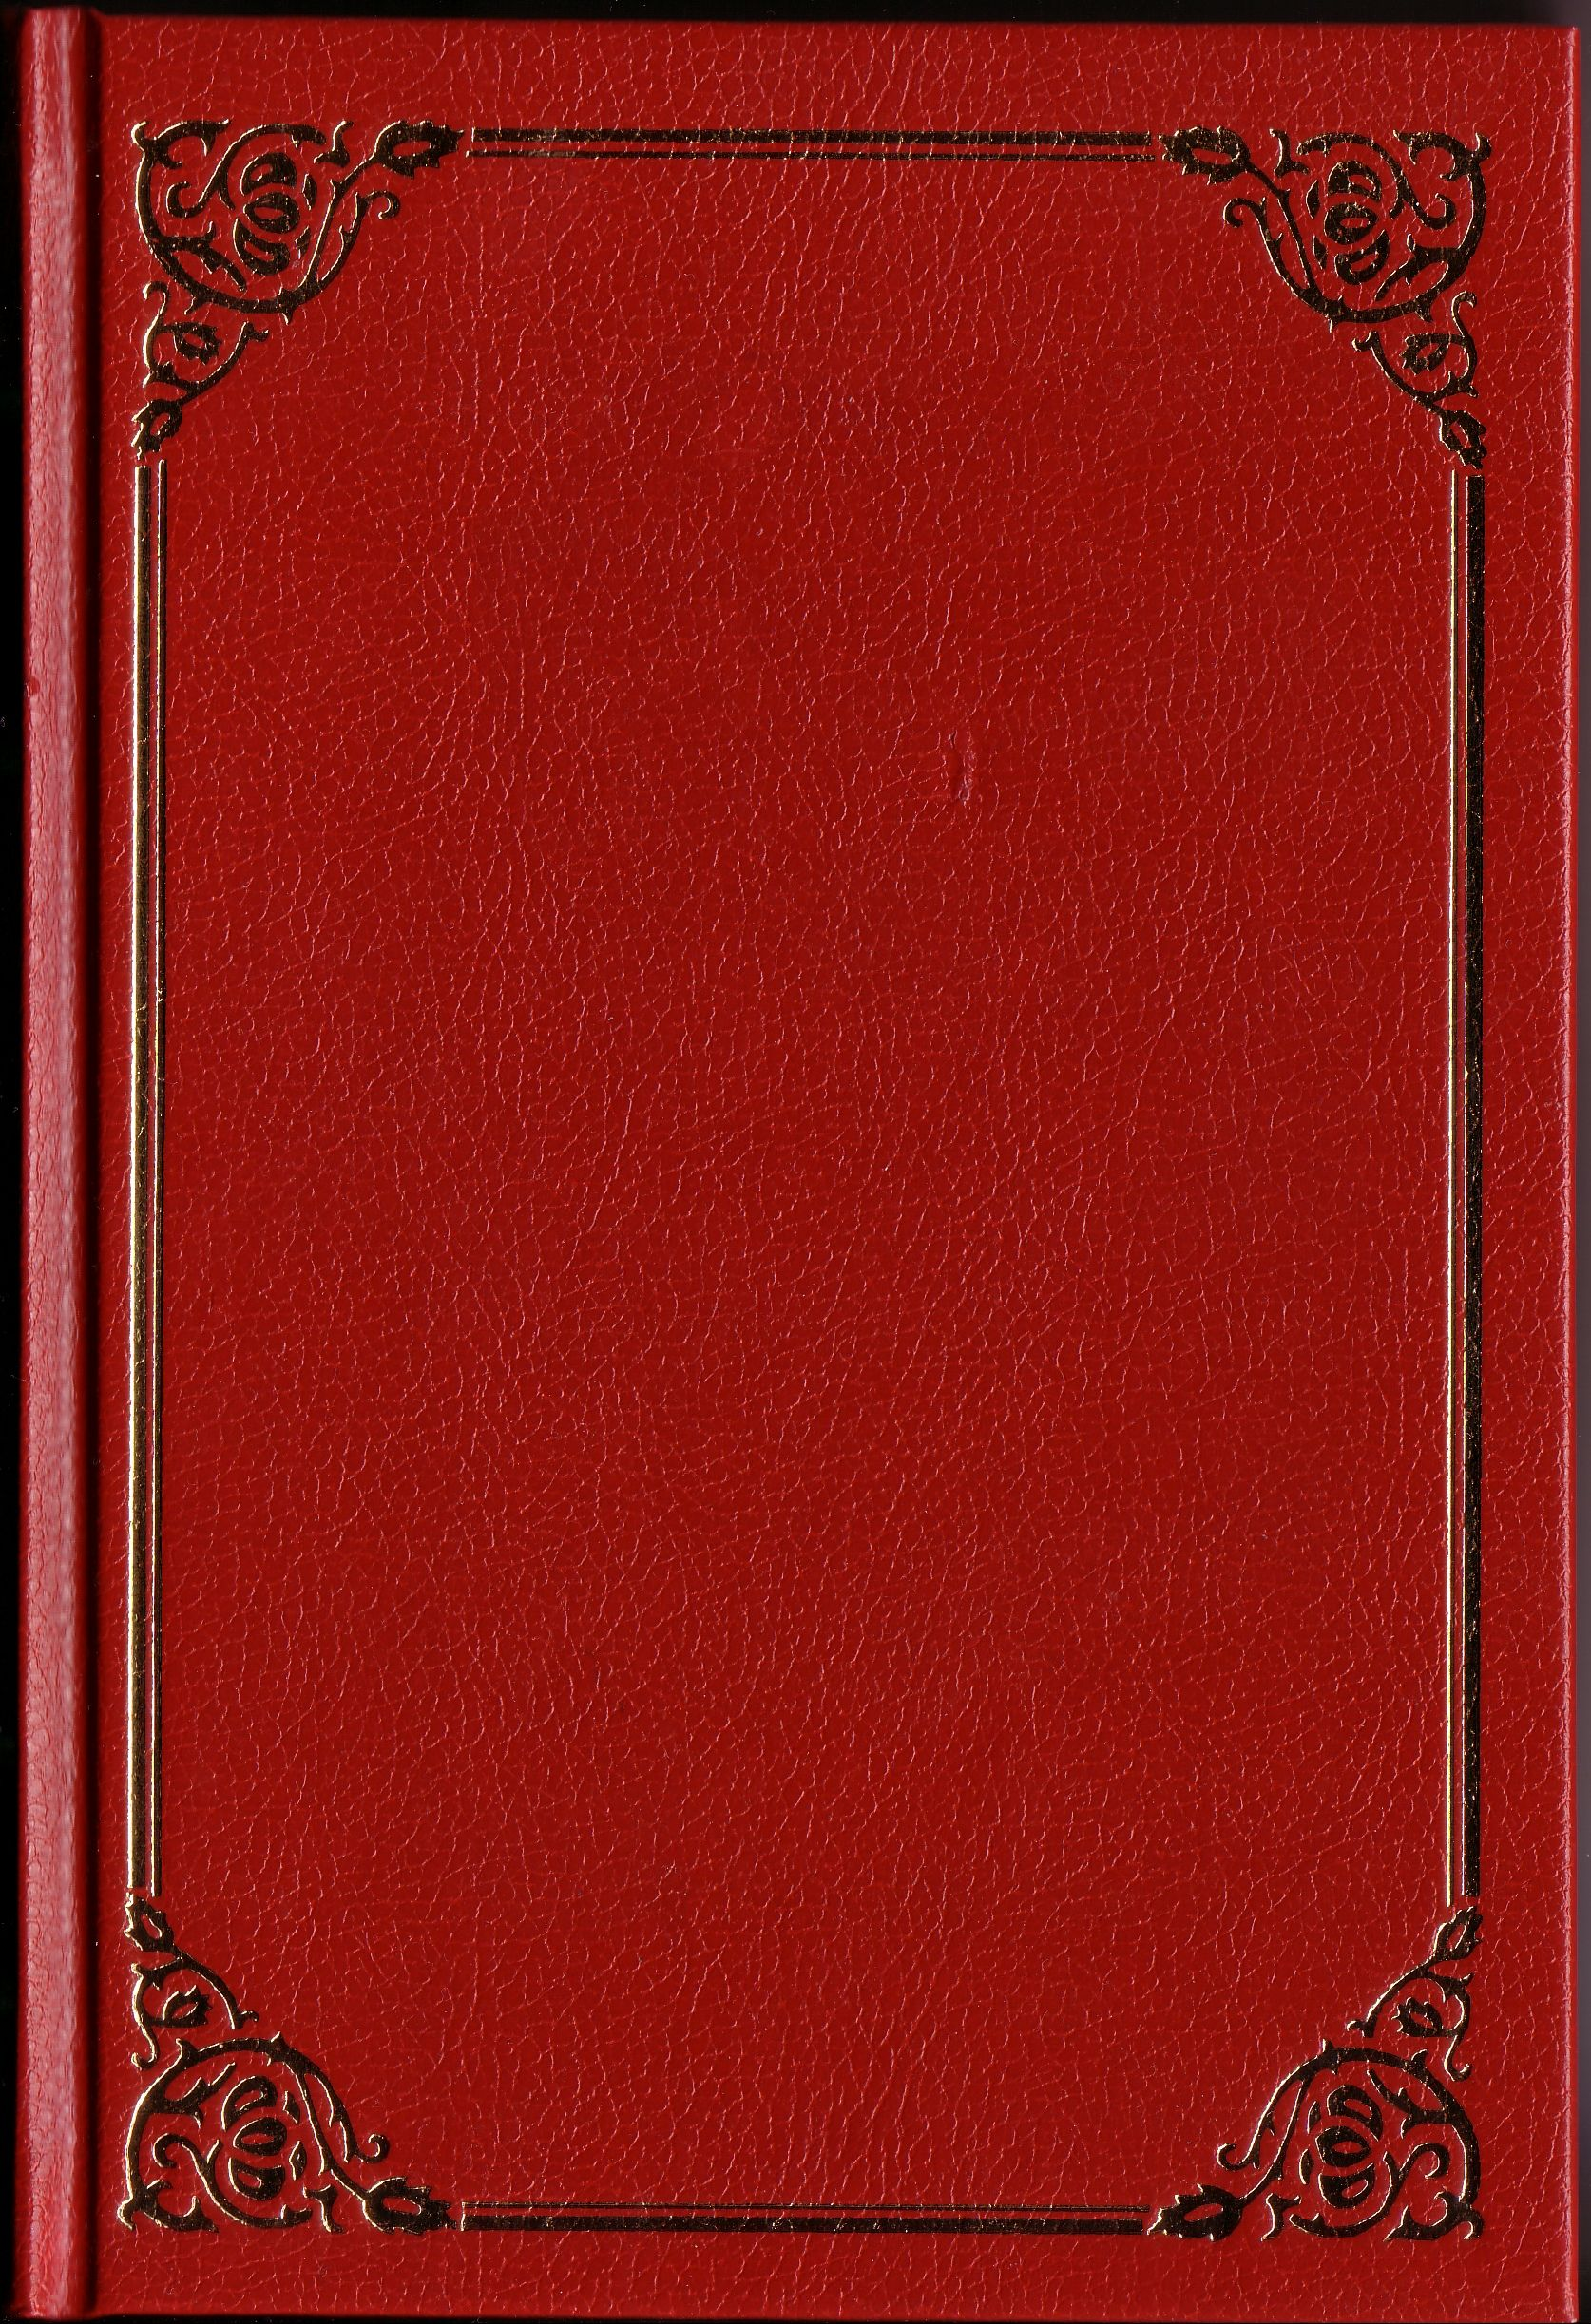 Old Book Cover Photo ~ Old book covers red pixshark images galleries